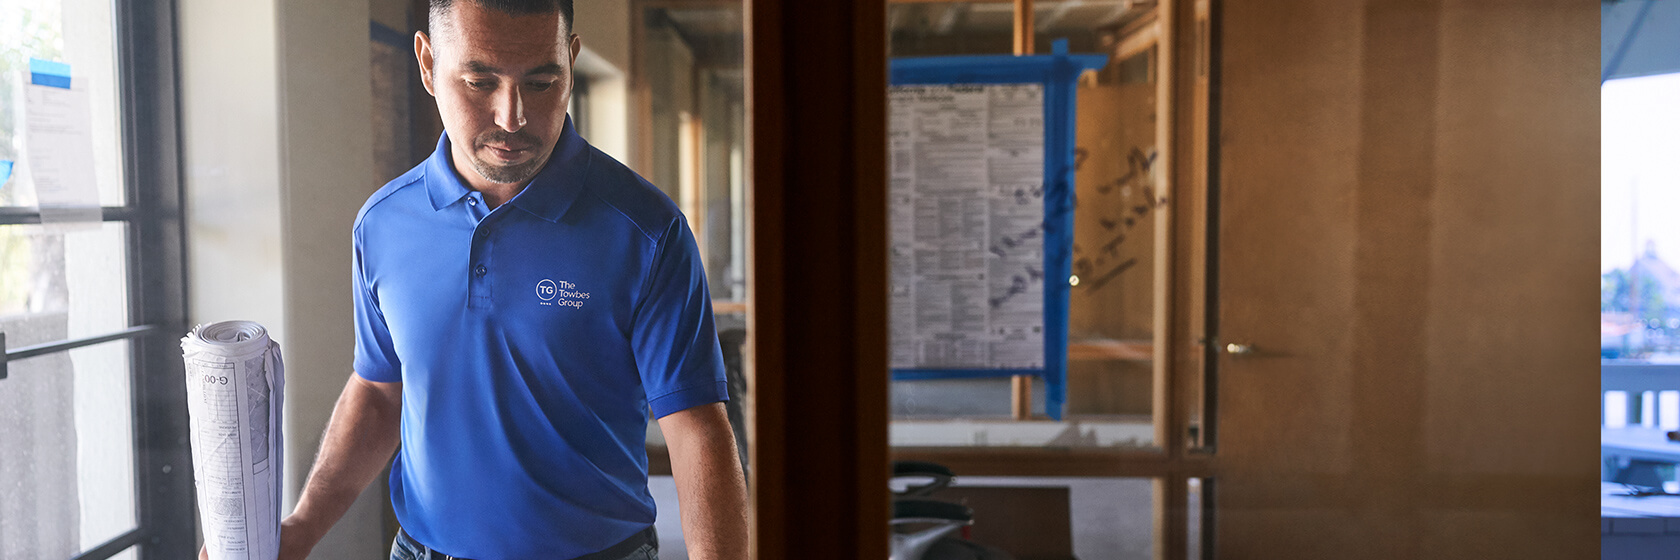 A man working in his office wearing a blue polo.